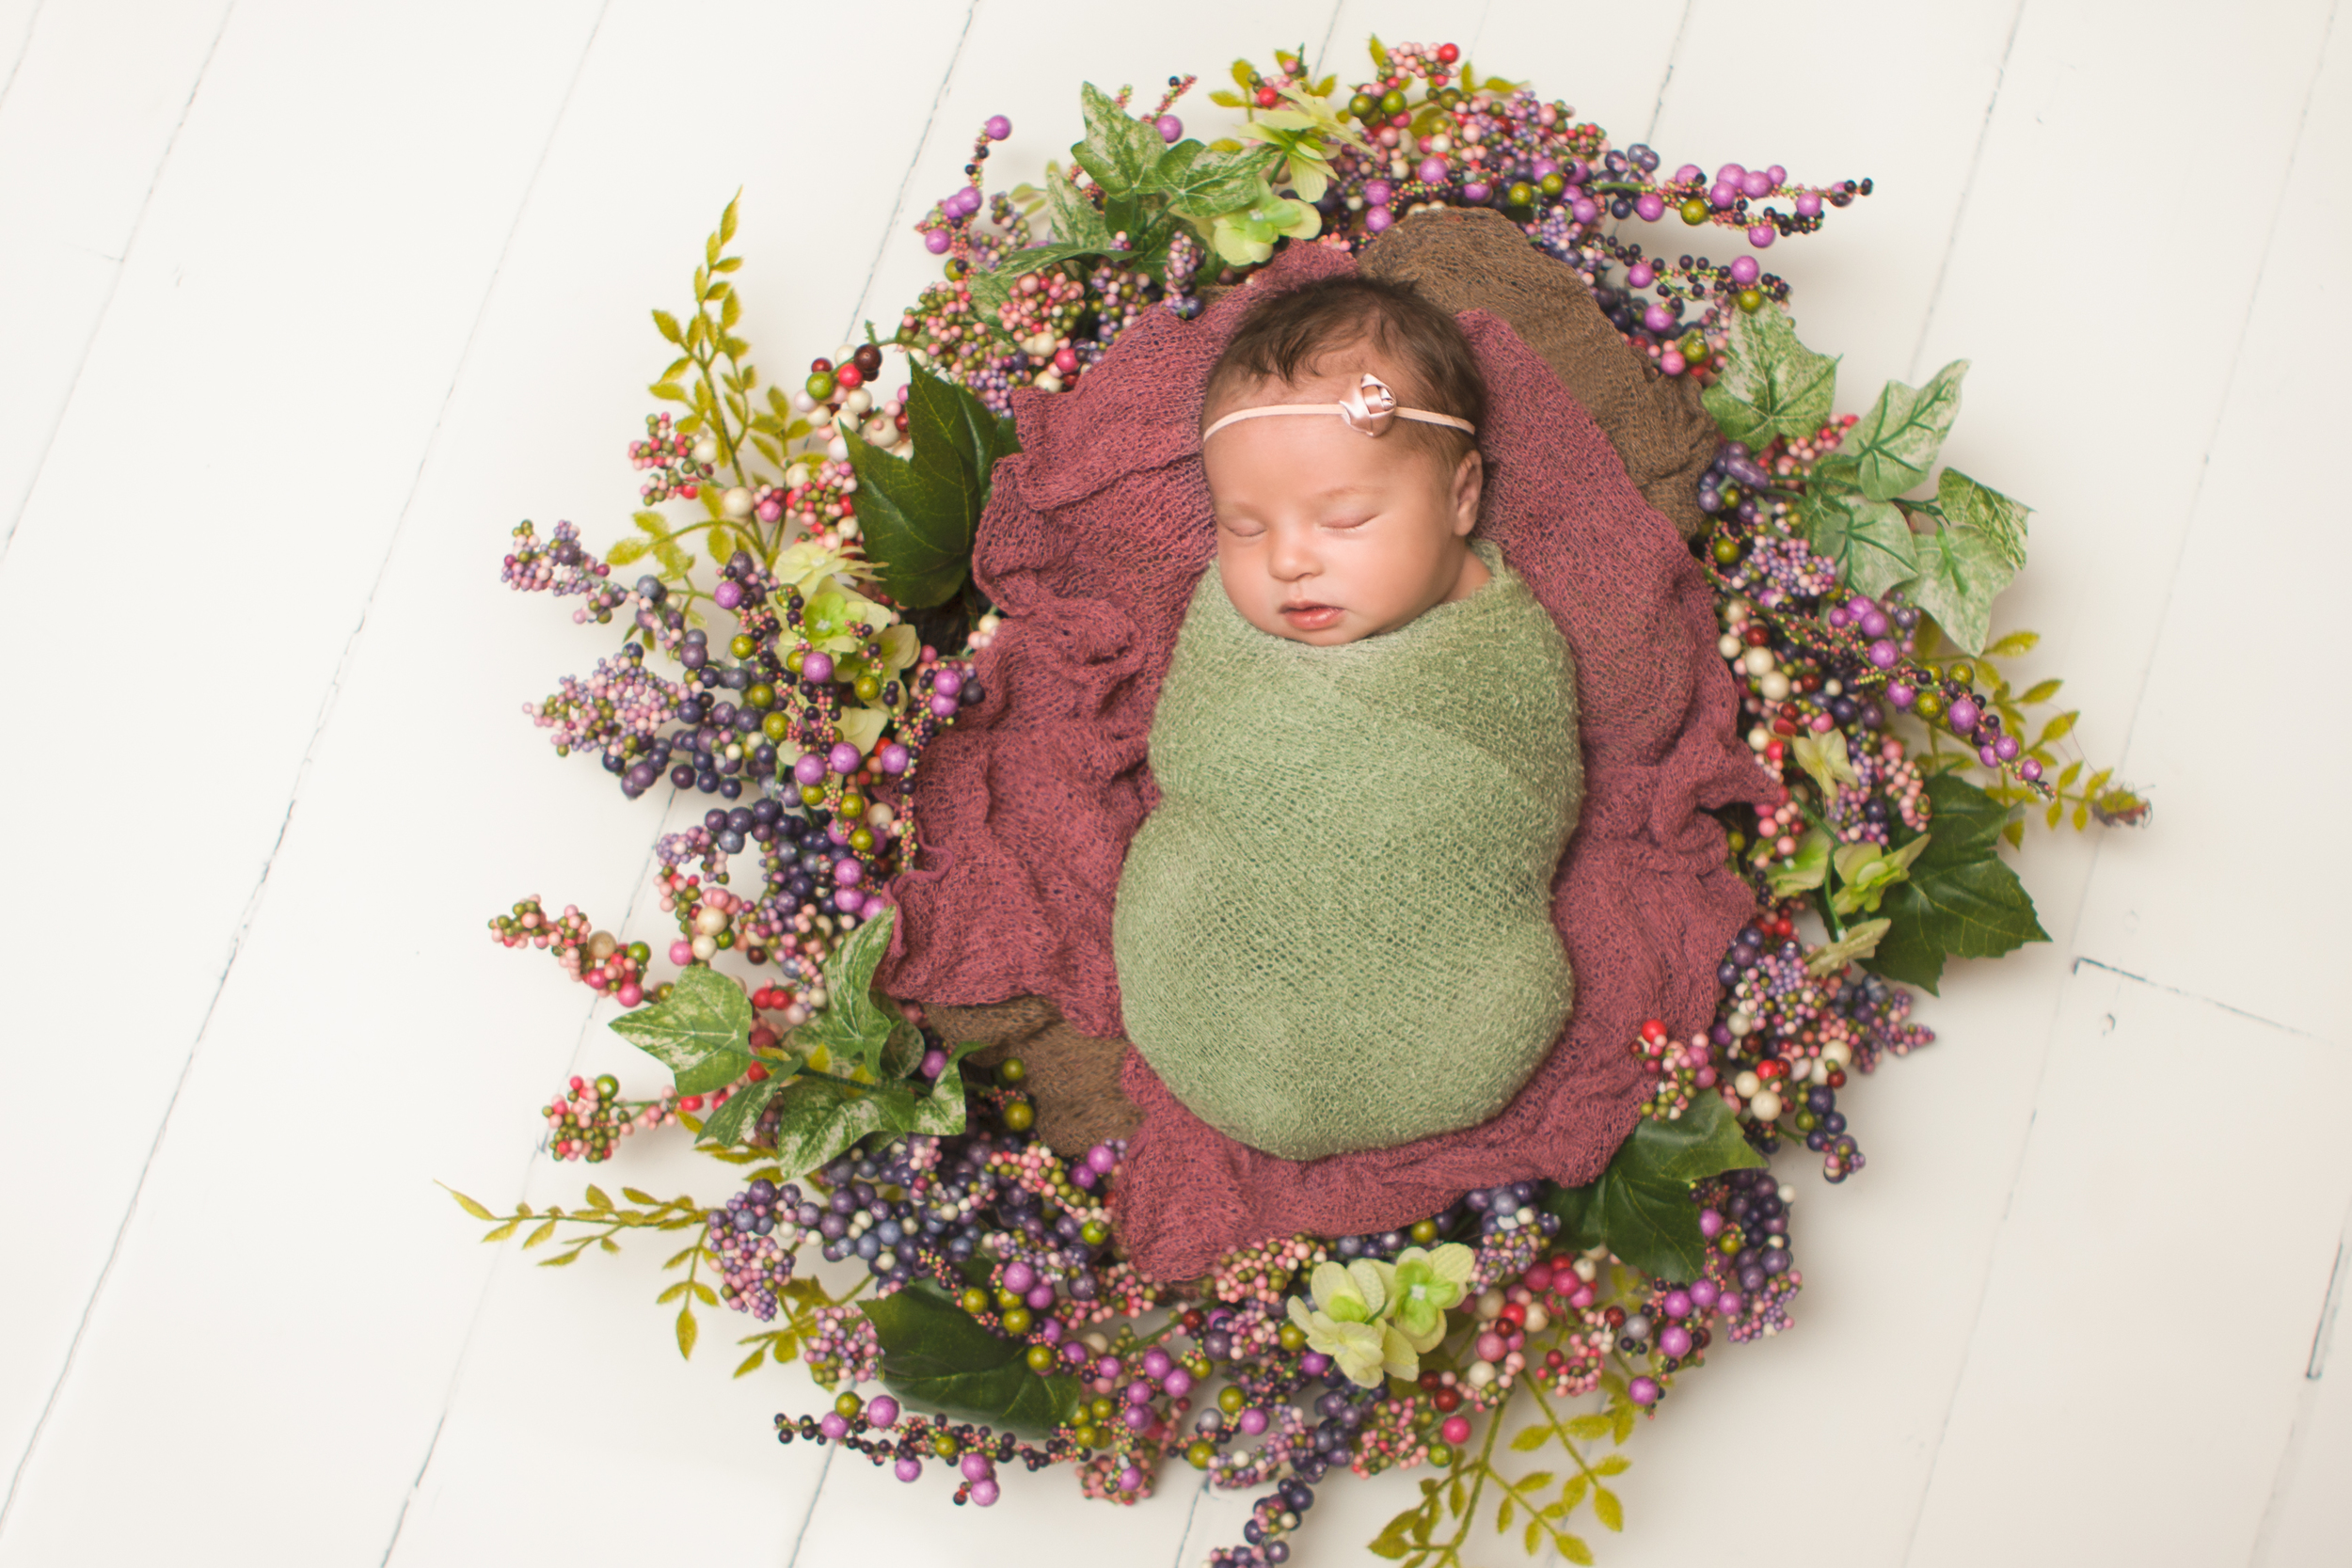 Newborn baby girl sleepingspring photos, wrapped in green knit stretch wrap, spring wreath, white wood floor backdrop.